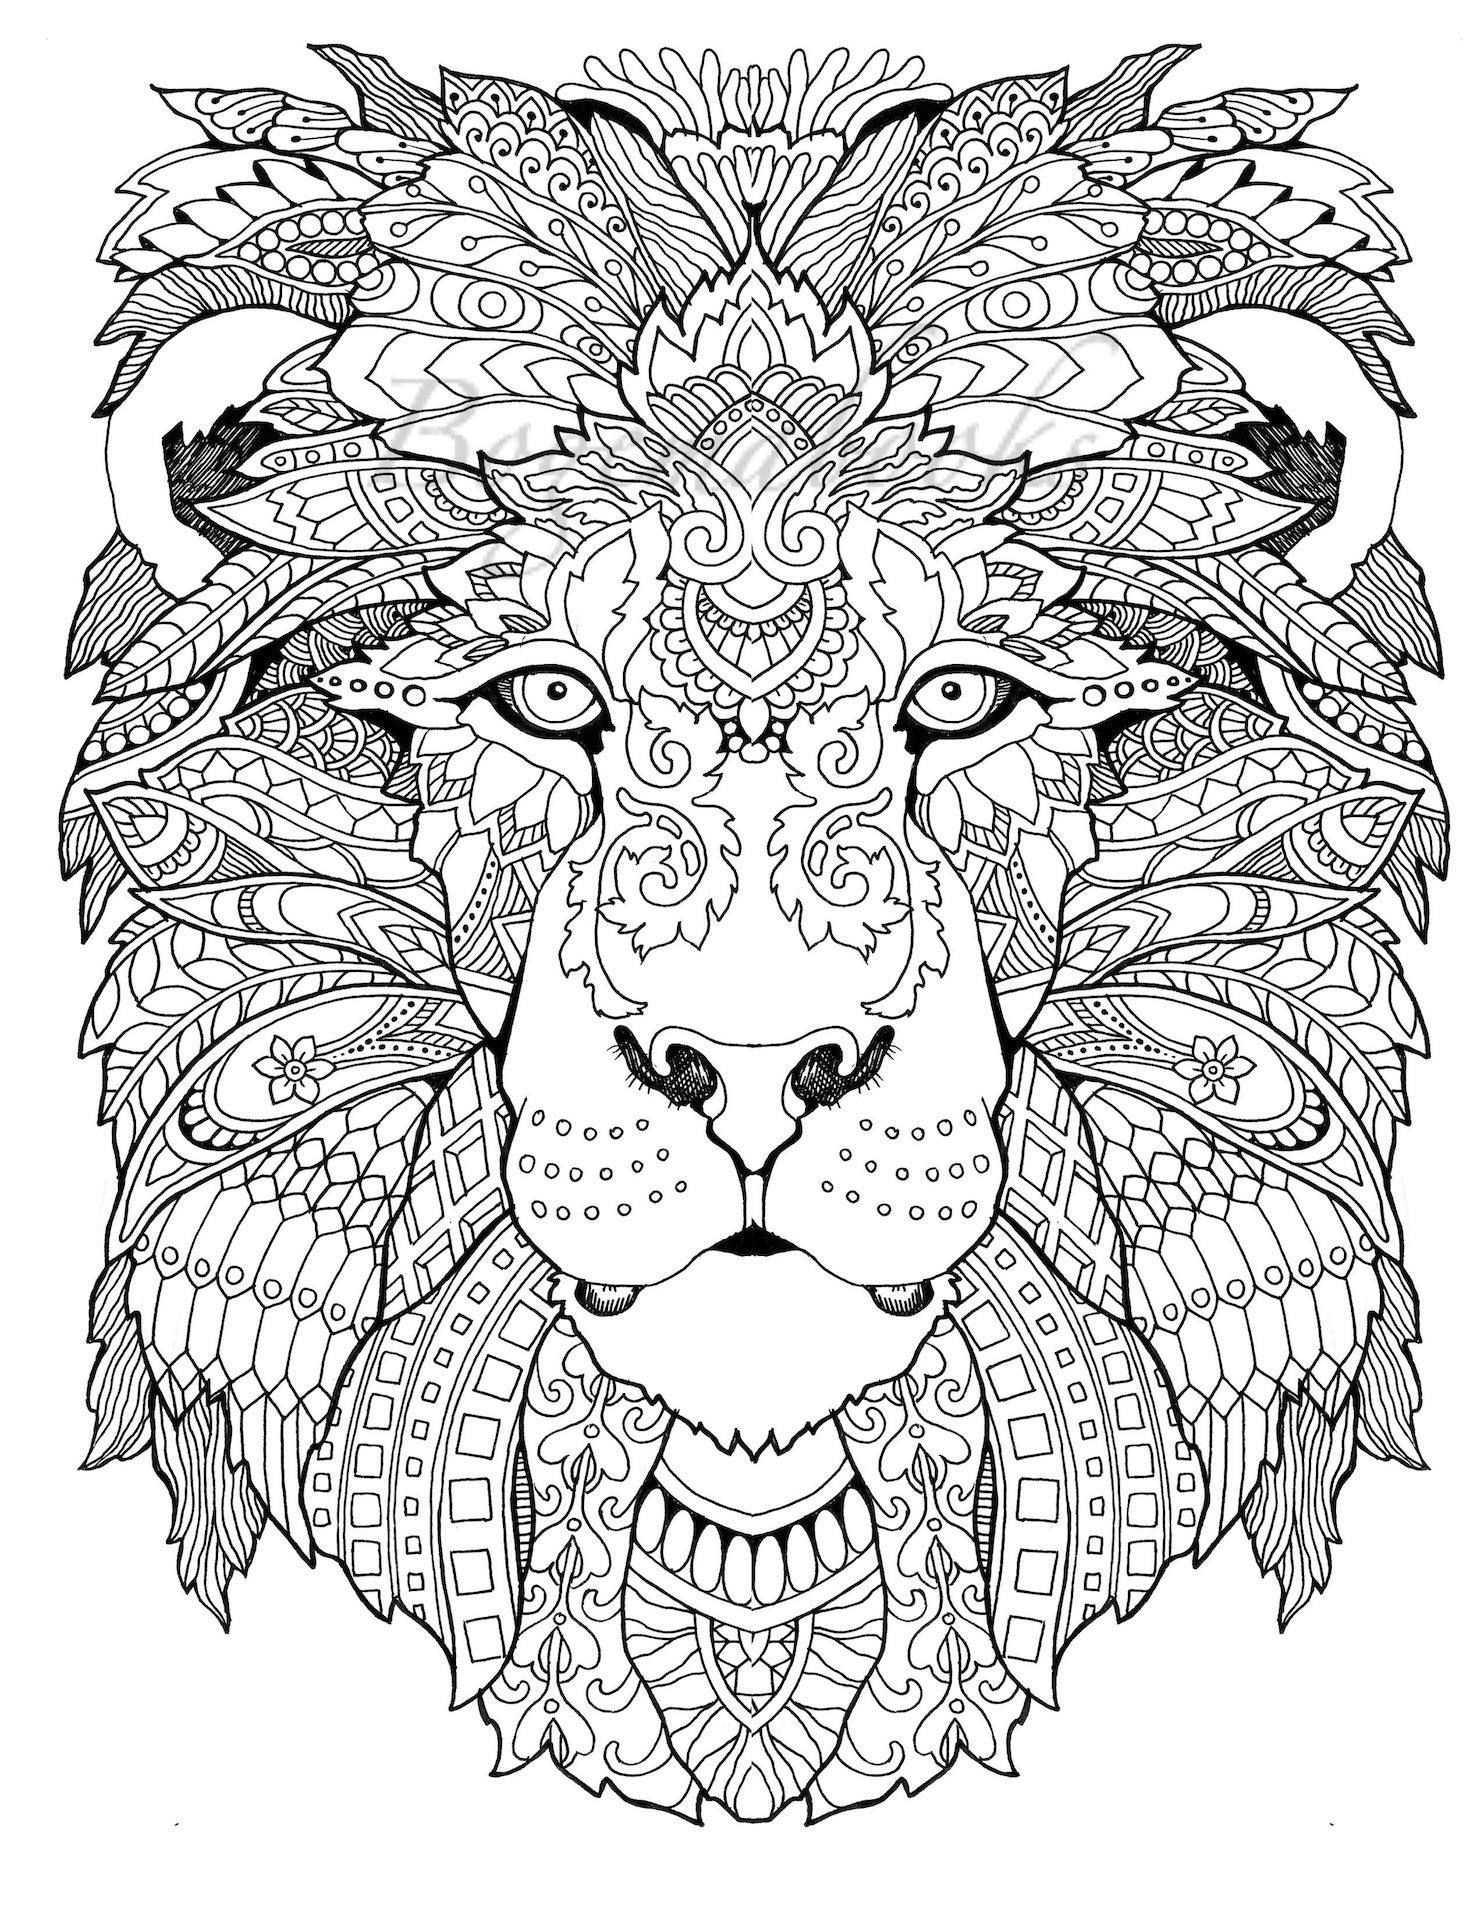 Awesome Animals (Adult Coloring Pages, Coloring Pages Printable - Free Printable Coloring Books Pdf